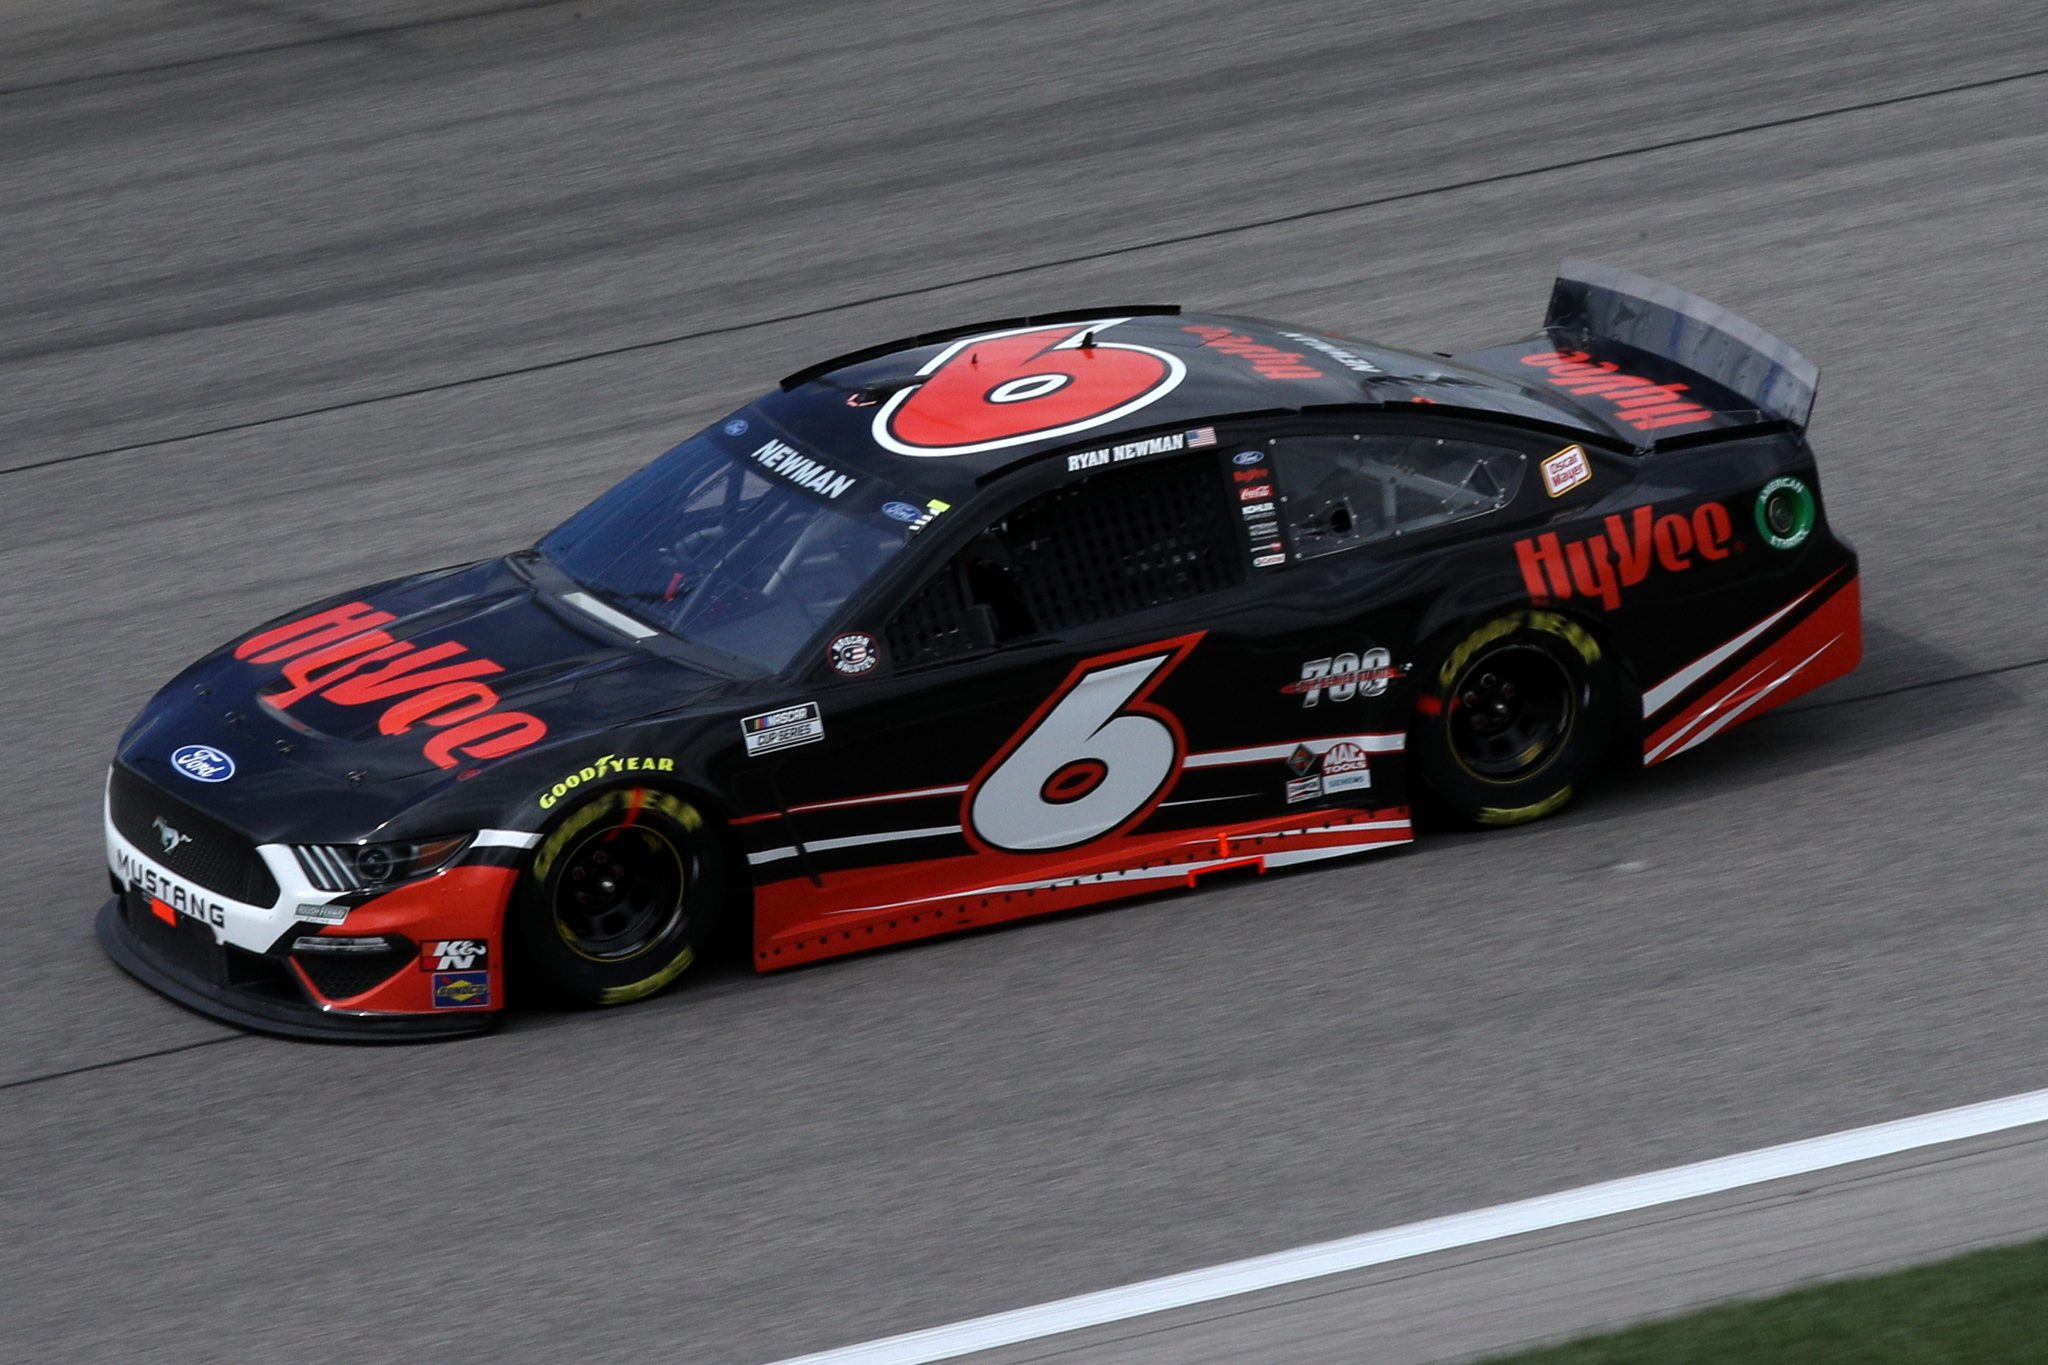 KANSAS CITY, KANSAS - MAY 02: Ryan Newman, driver of the #6 Hy-Vee Ford, drives during the NASCAR Cup Series Buschy McBusch Race 400 at Kansas Speedway on May 02, 2021 in Kansas City, Kansas. (Photo by Sean Gardner/Getty Images) | Getty Images